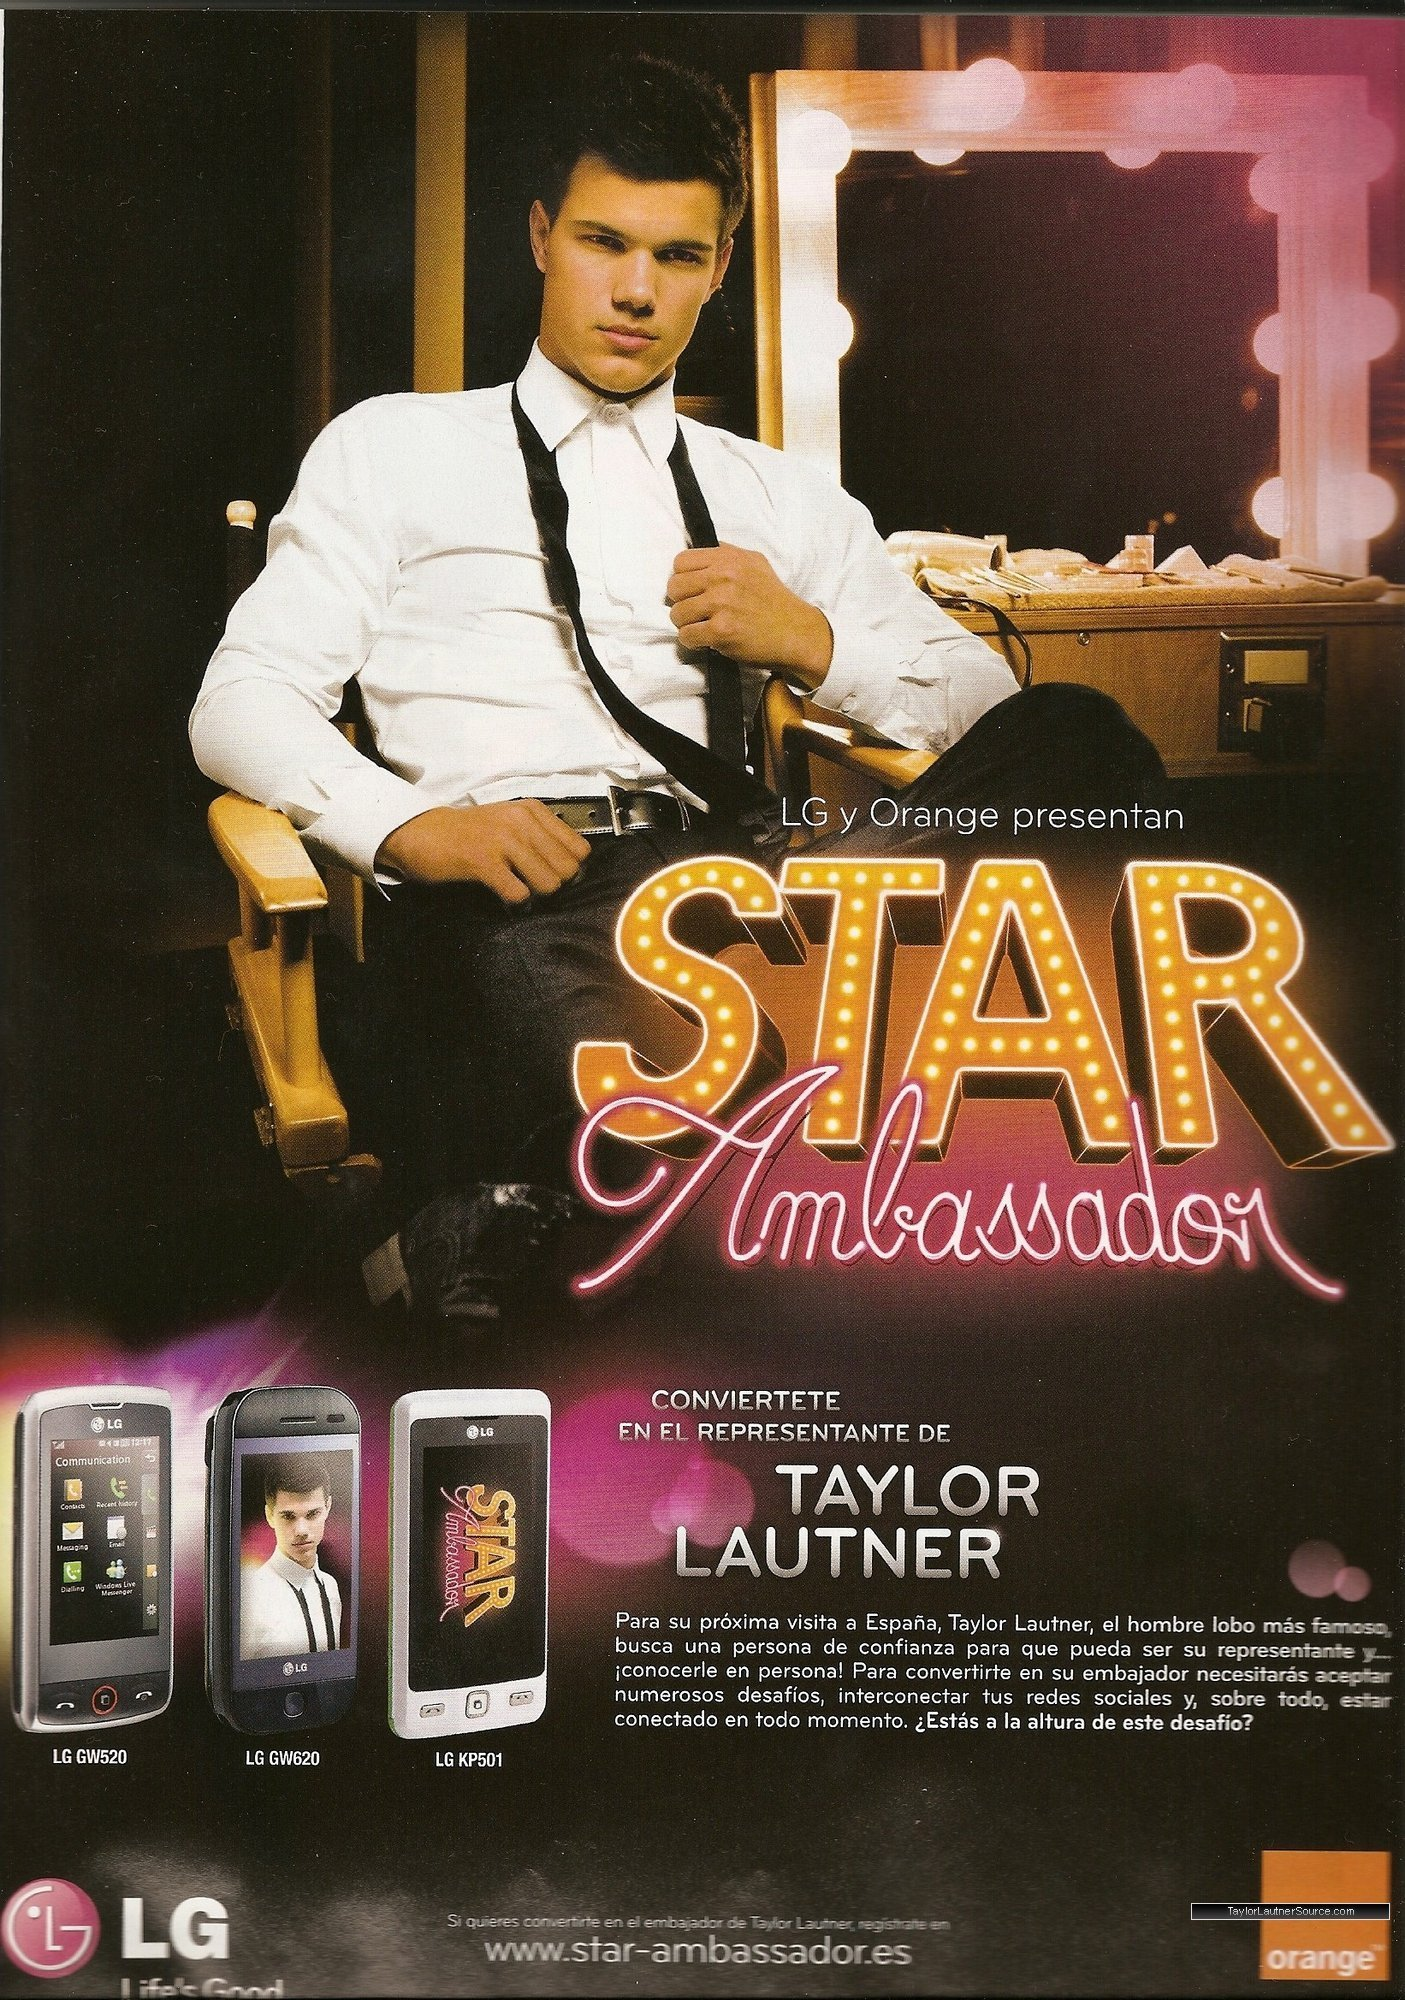 http://images2.fanpop.com/image/photos/10100000/Picture-of-Taylor-as-LG-Orange-s-Star-Ambassador-twilight-series-10181961-1405-2000.jpg